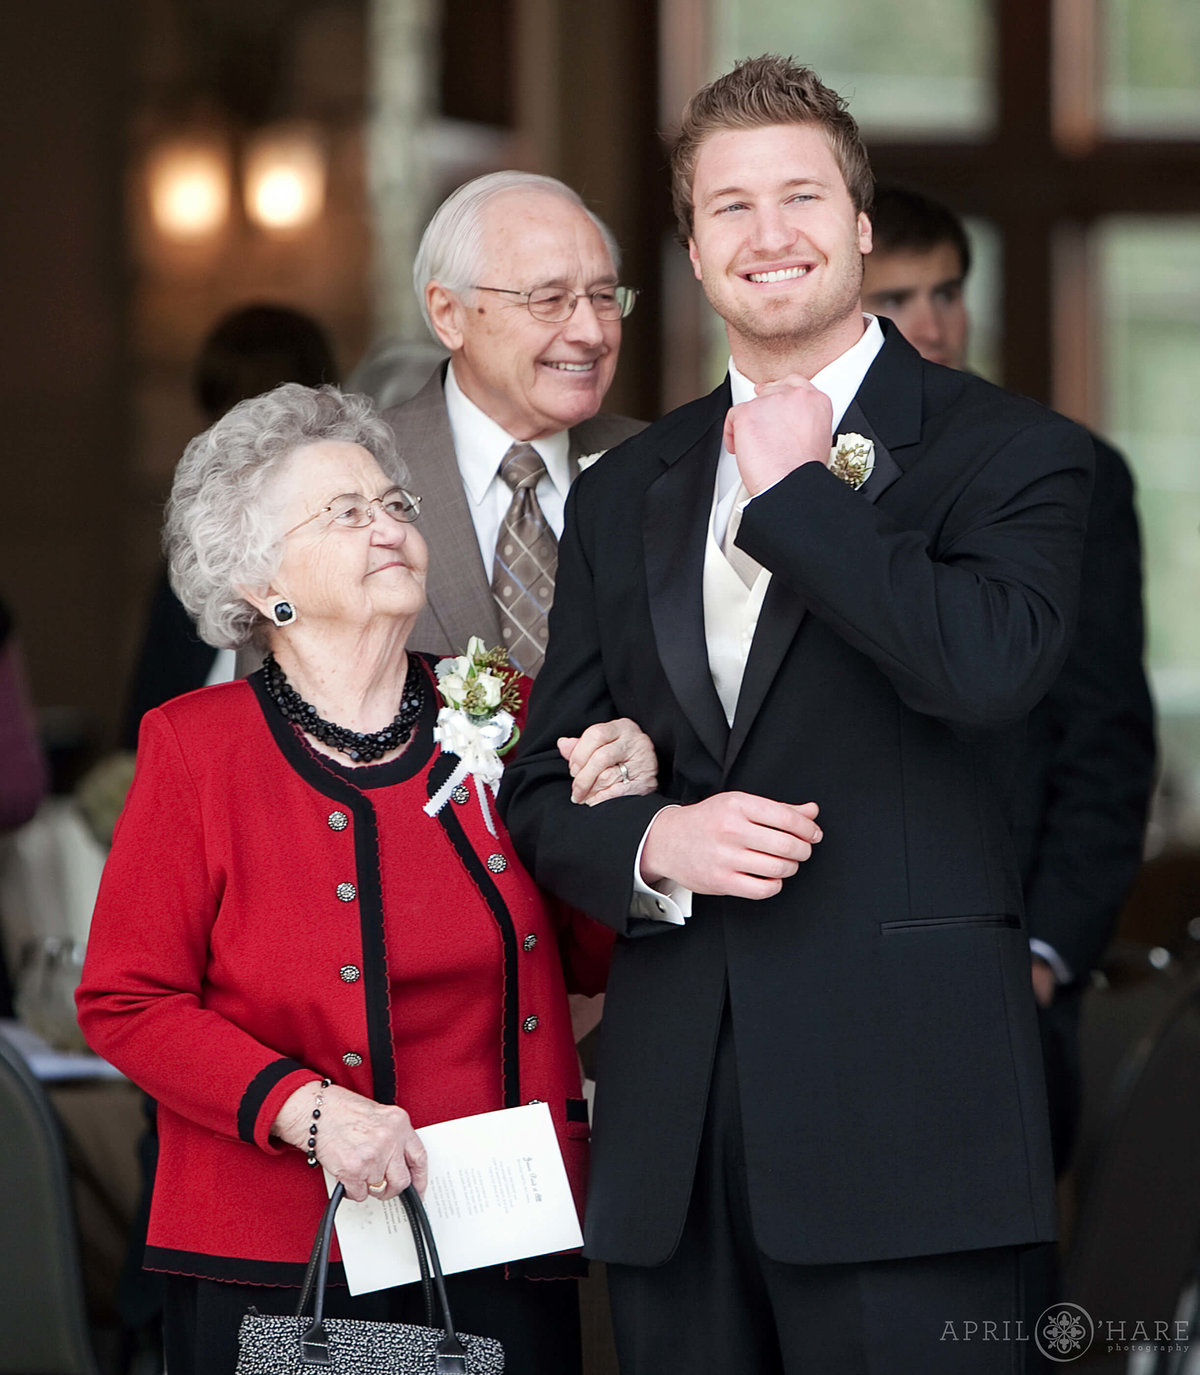 Sweet wedding photo of Grandma looking at her grandson at Cielo in Castle Pines in Colorado